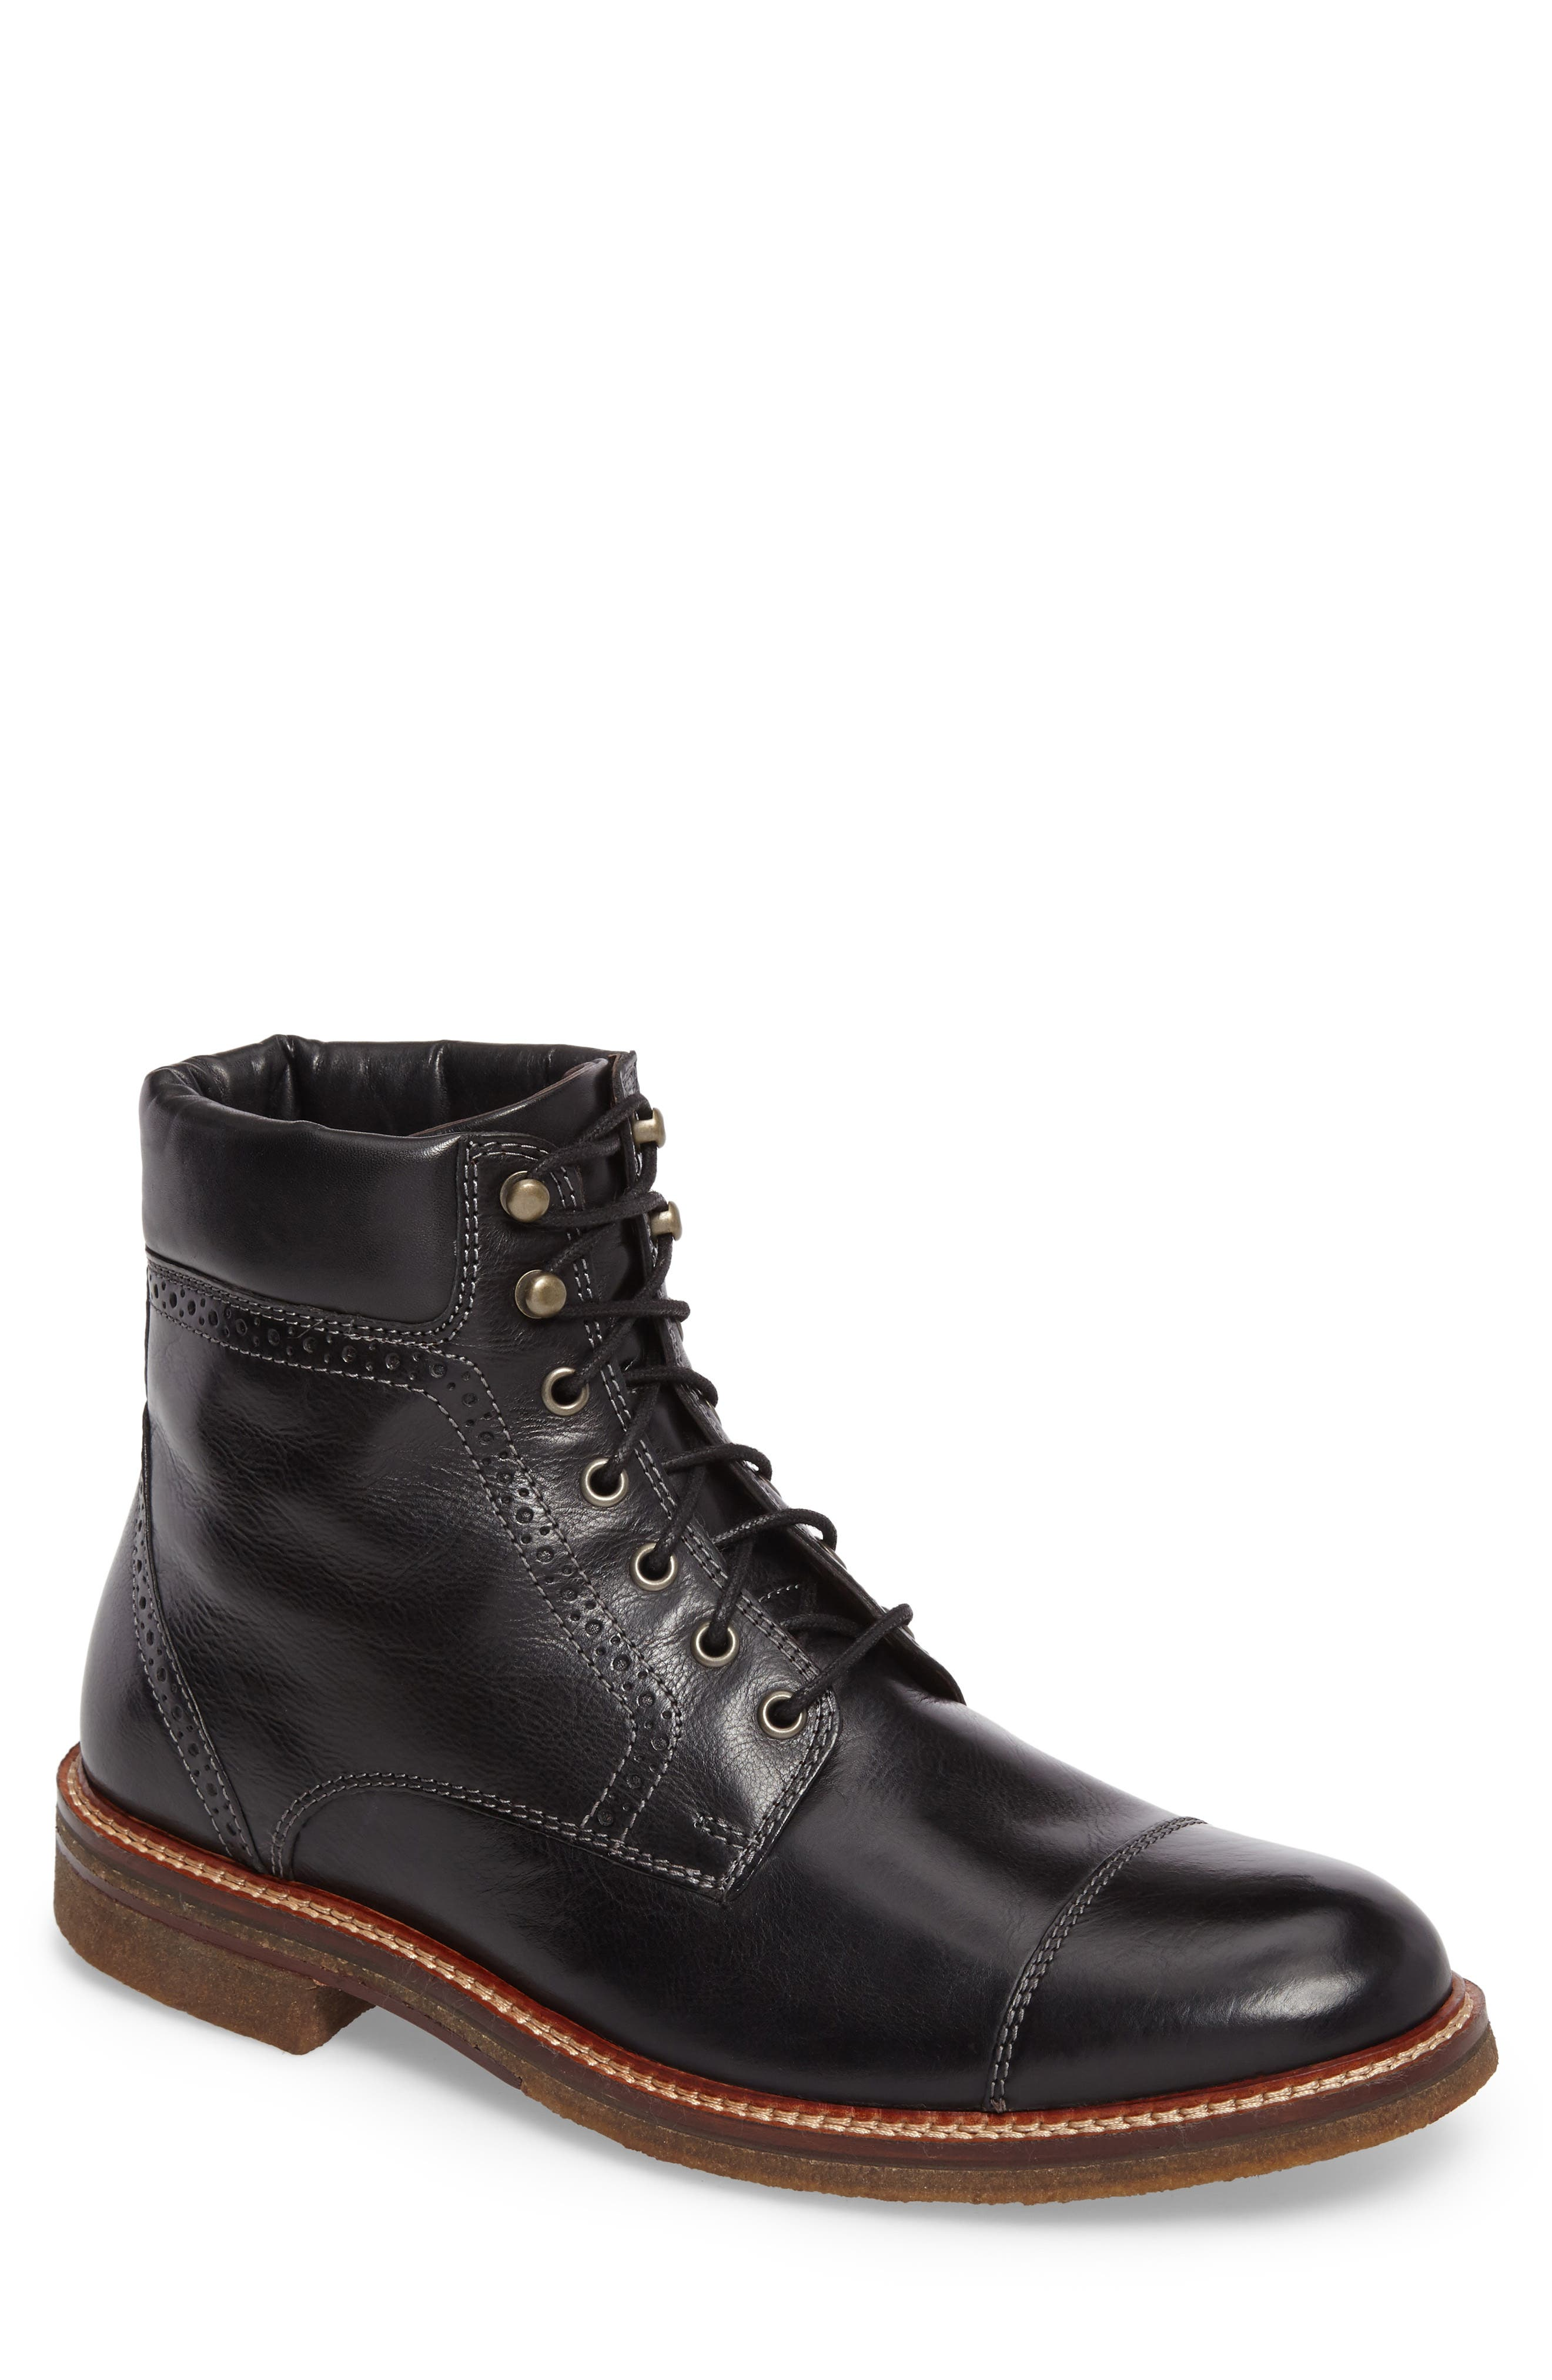 Forrester Cap Toe Boot,                         Main,                         color, BLACK LEATHER